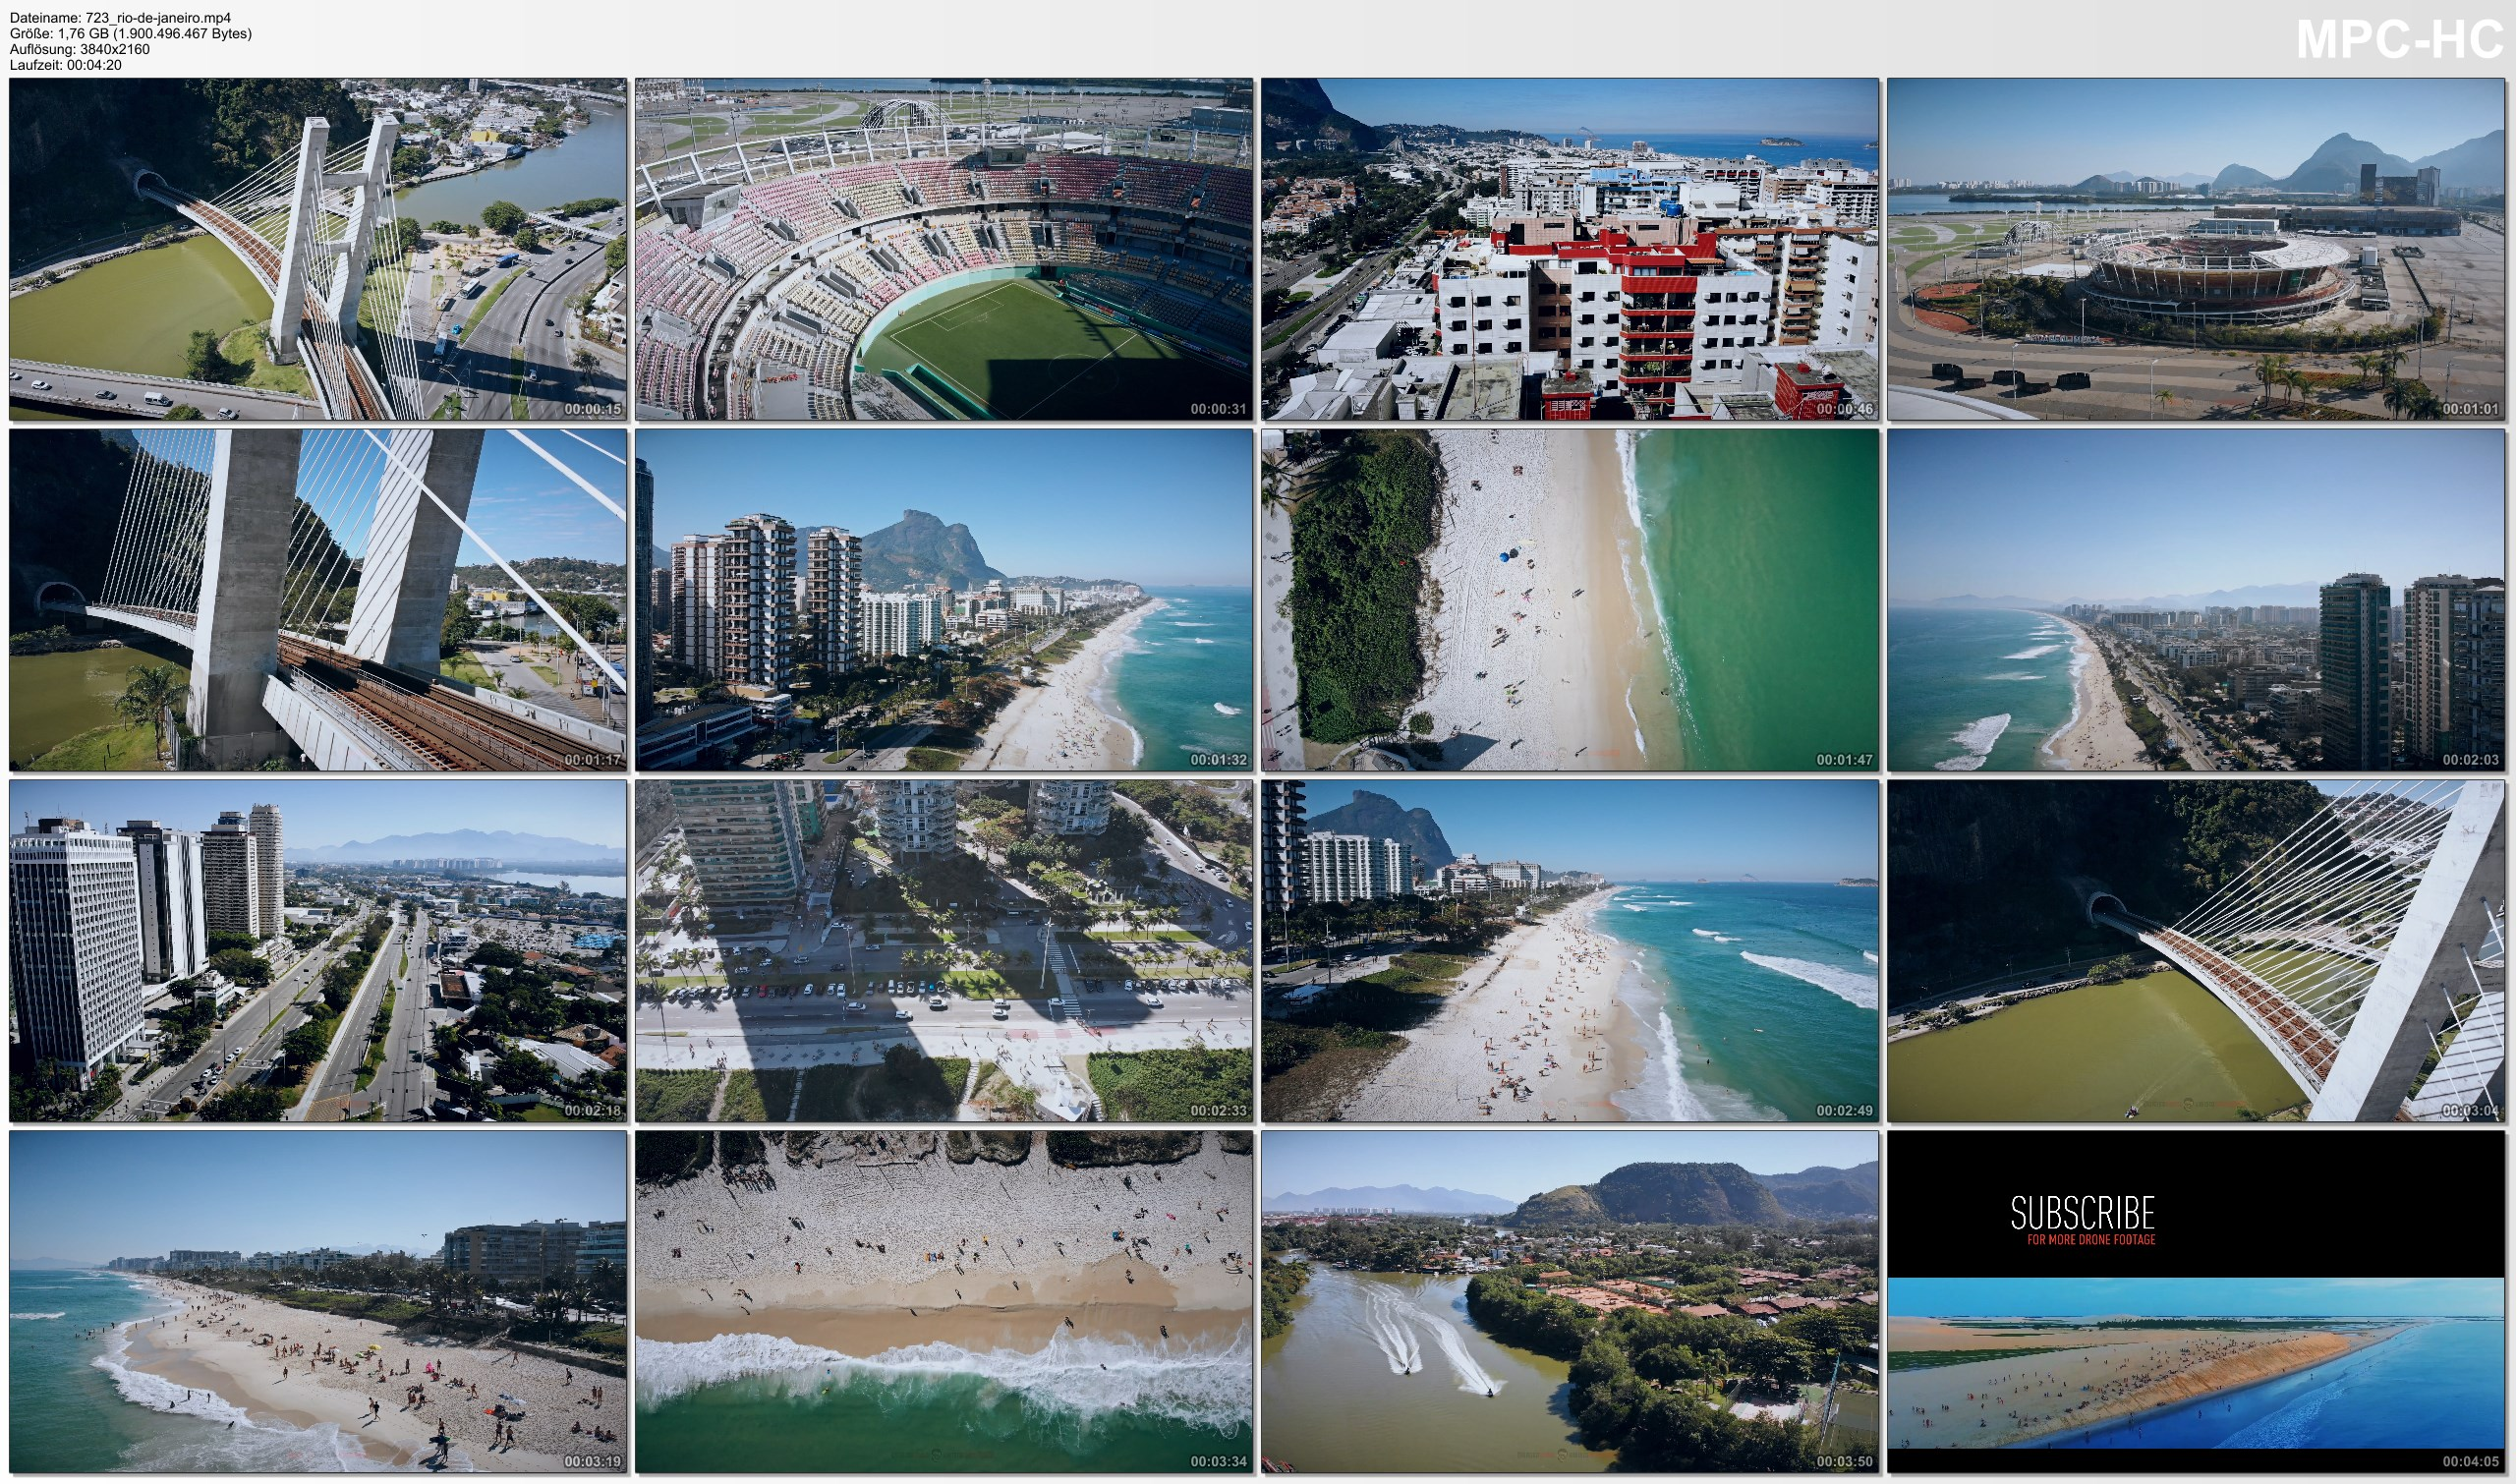 Drone Pictures from Video 【4K】DRONELAPSE FILM: «Barra da Tijuca (Rio)» Brazil 2020 | Ultra HD